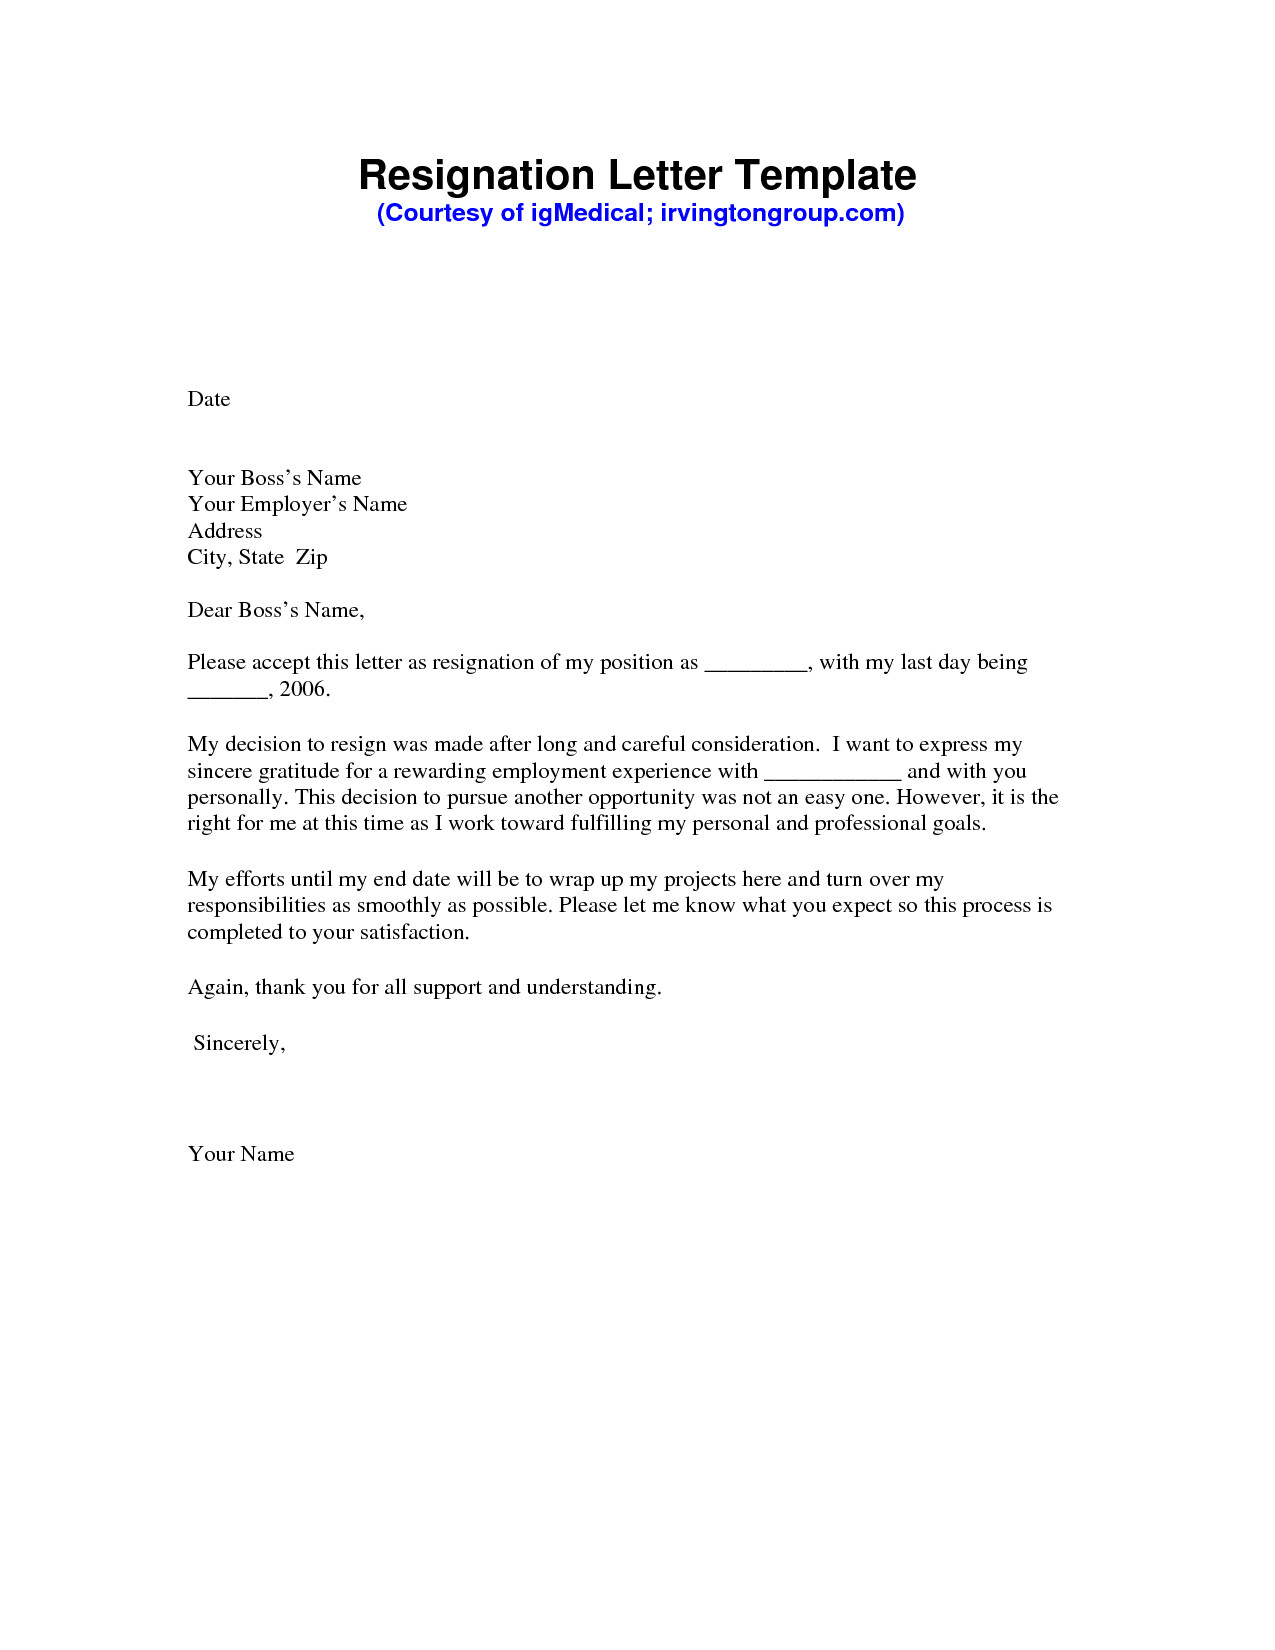 Letter Of Resignation Templates Word Resignation Letter Sample Pdf